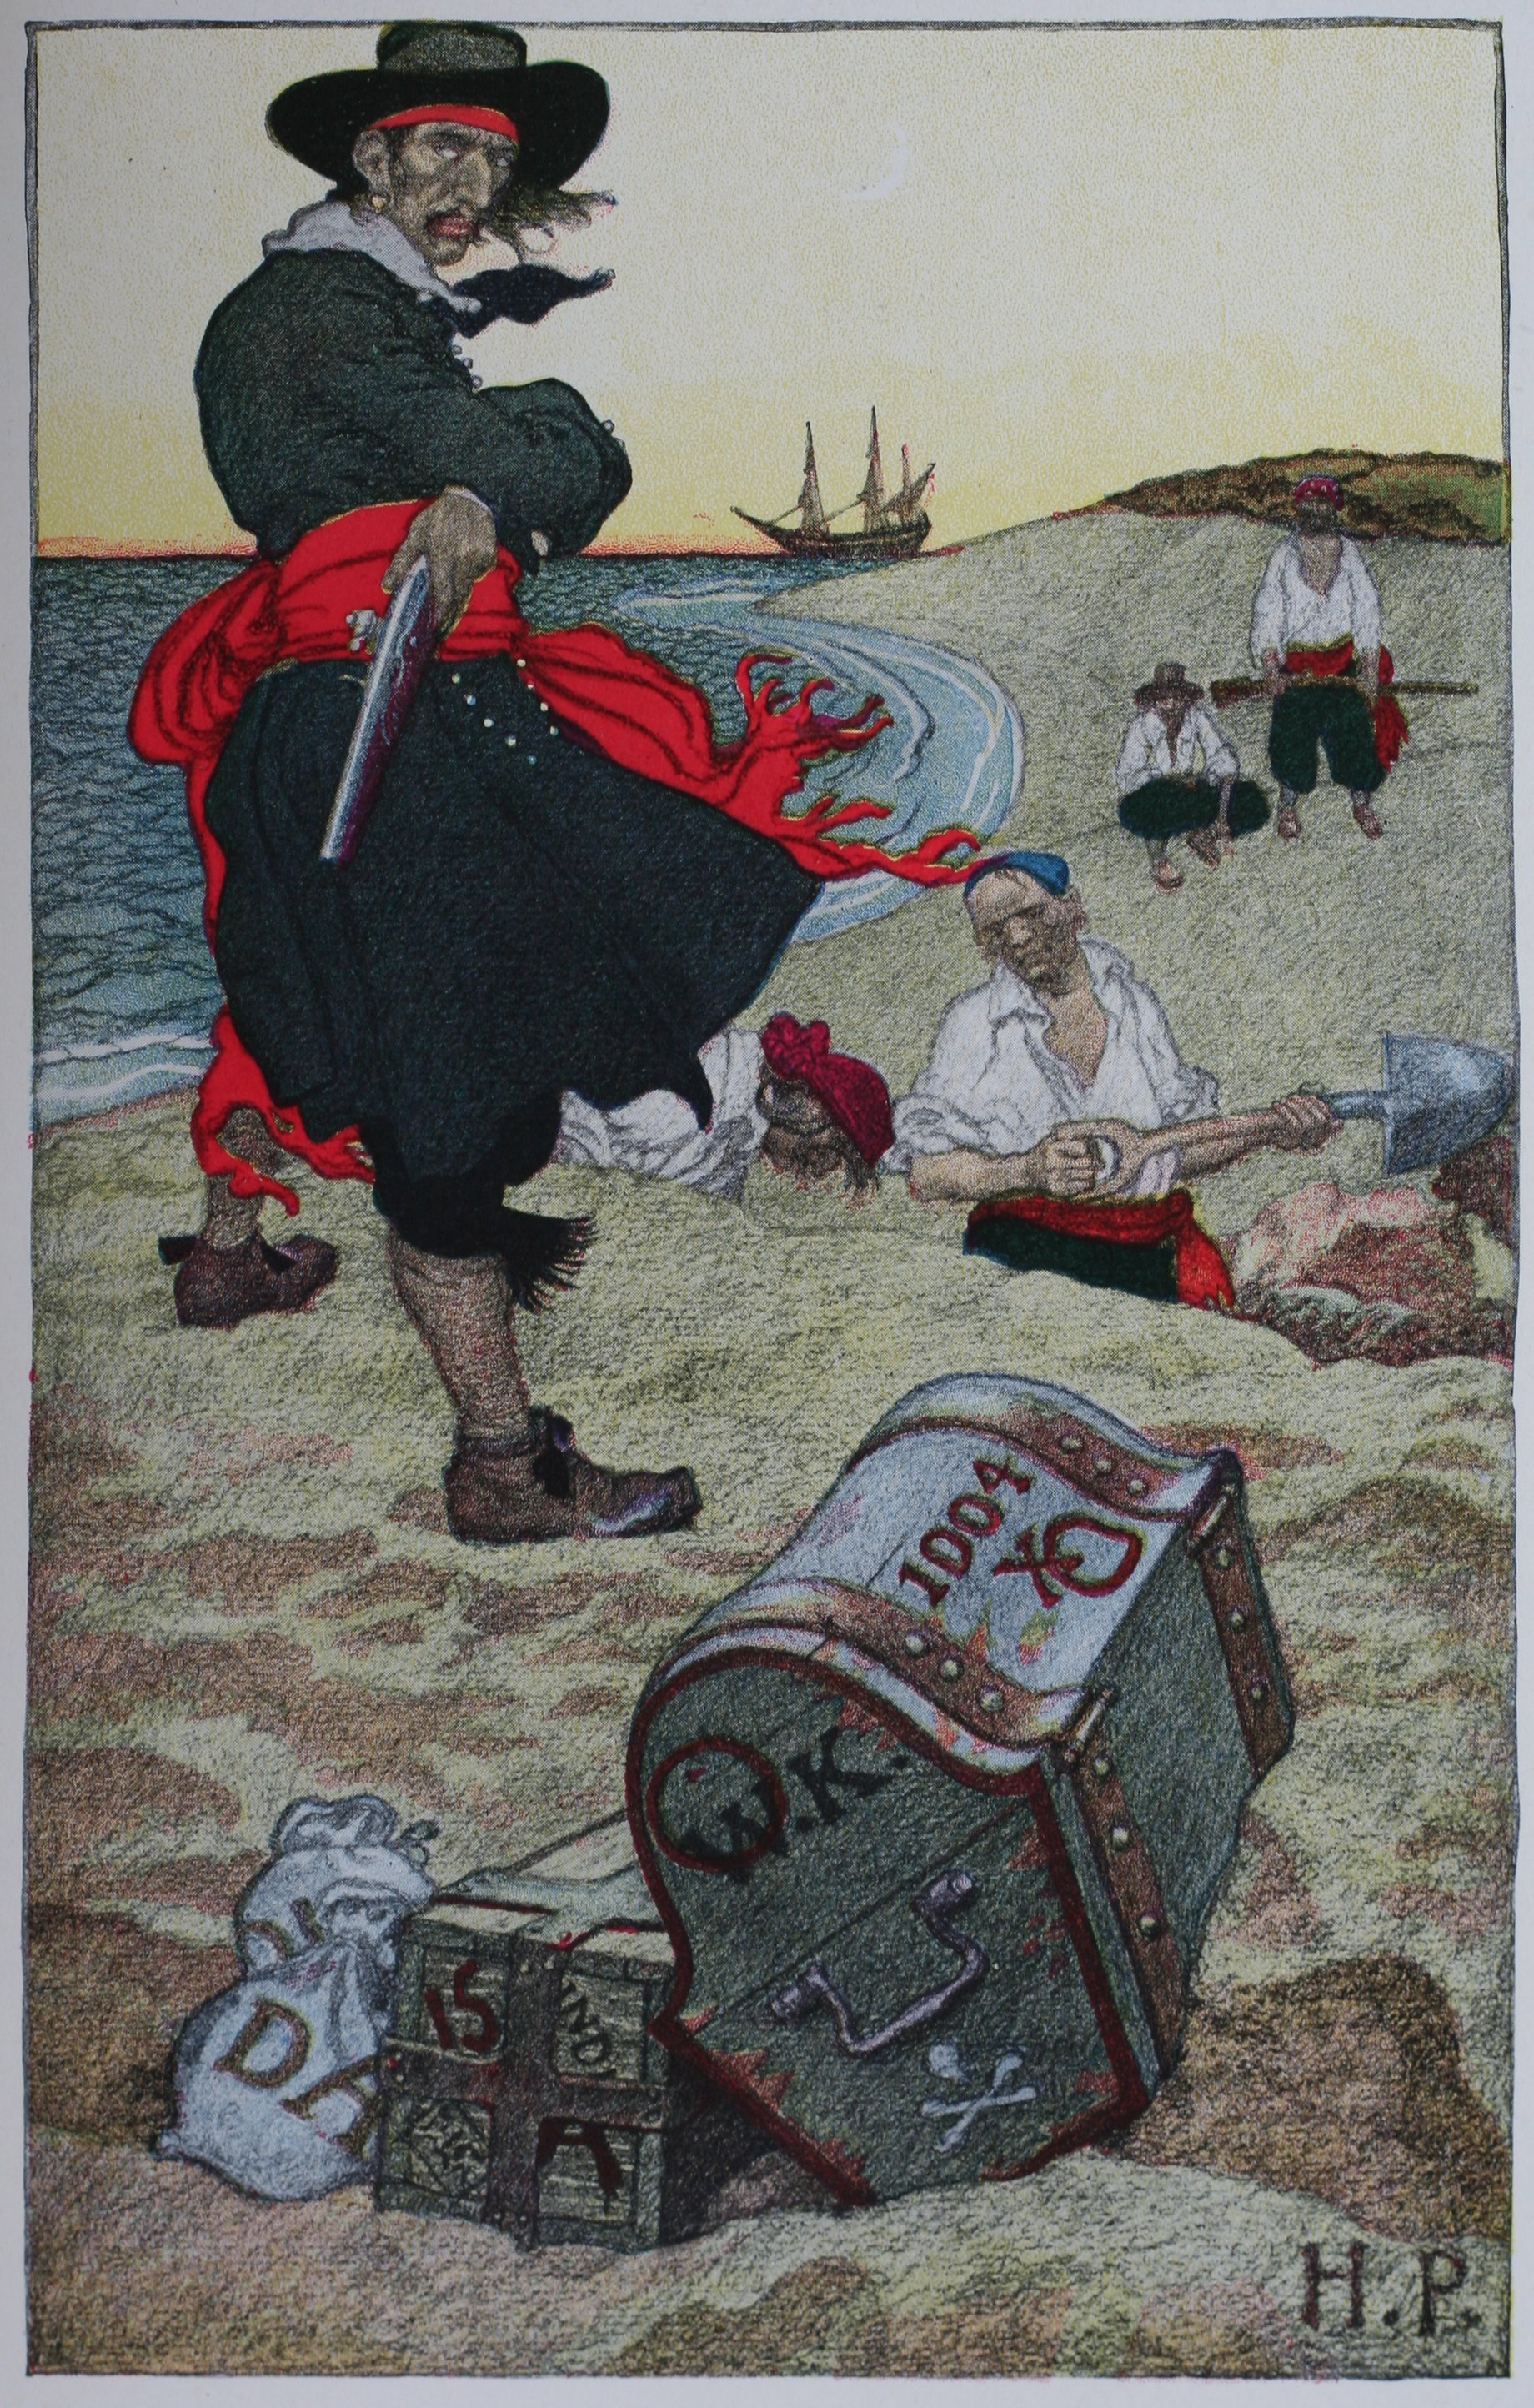 Howard Pyle: Buried Treasure 1921 - Quelle: Wikimedia Commons